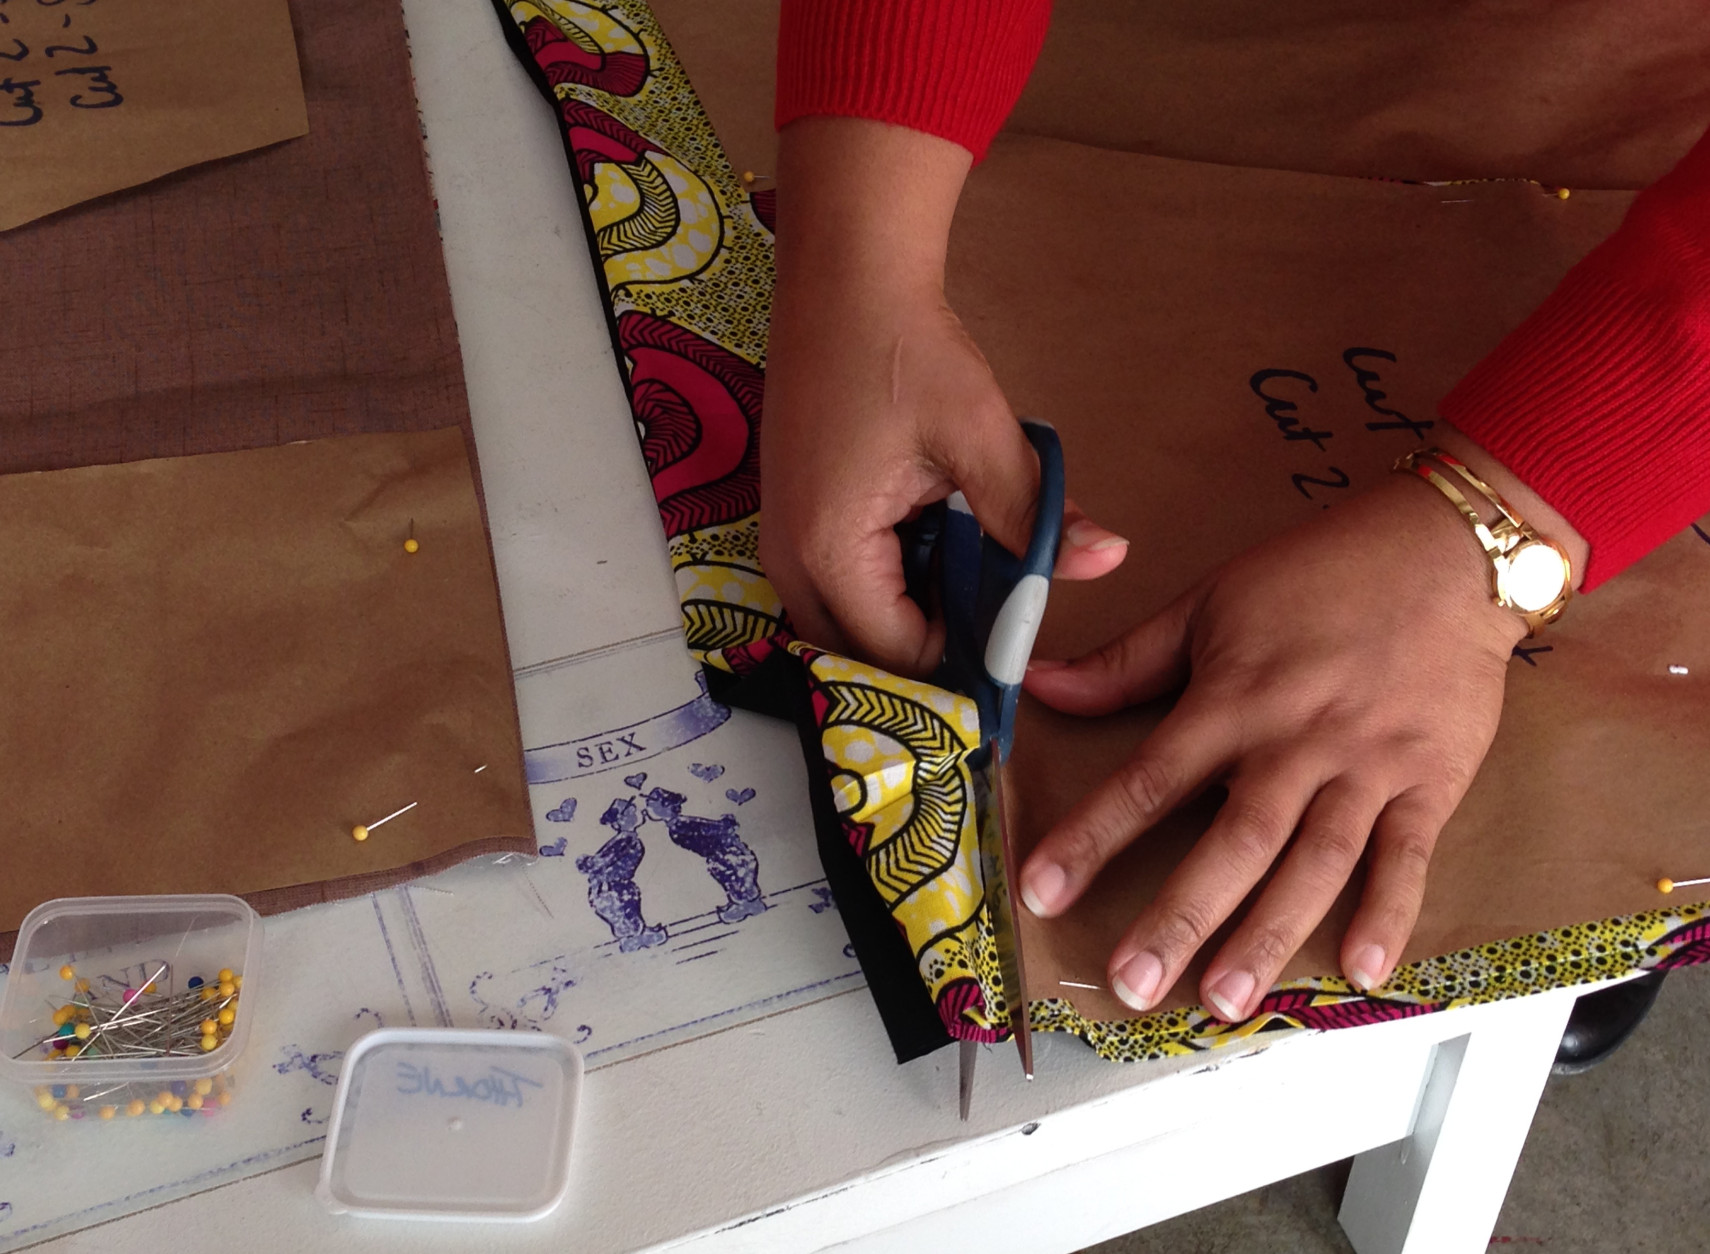 Cecily Habimana and Tisha Thorne, who host Sip and Sew DC events, say they offer these workshops so that sewing doesn't become a lost art. (Courtesy Sip & Sew DC)